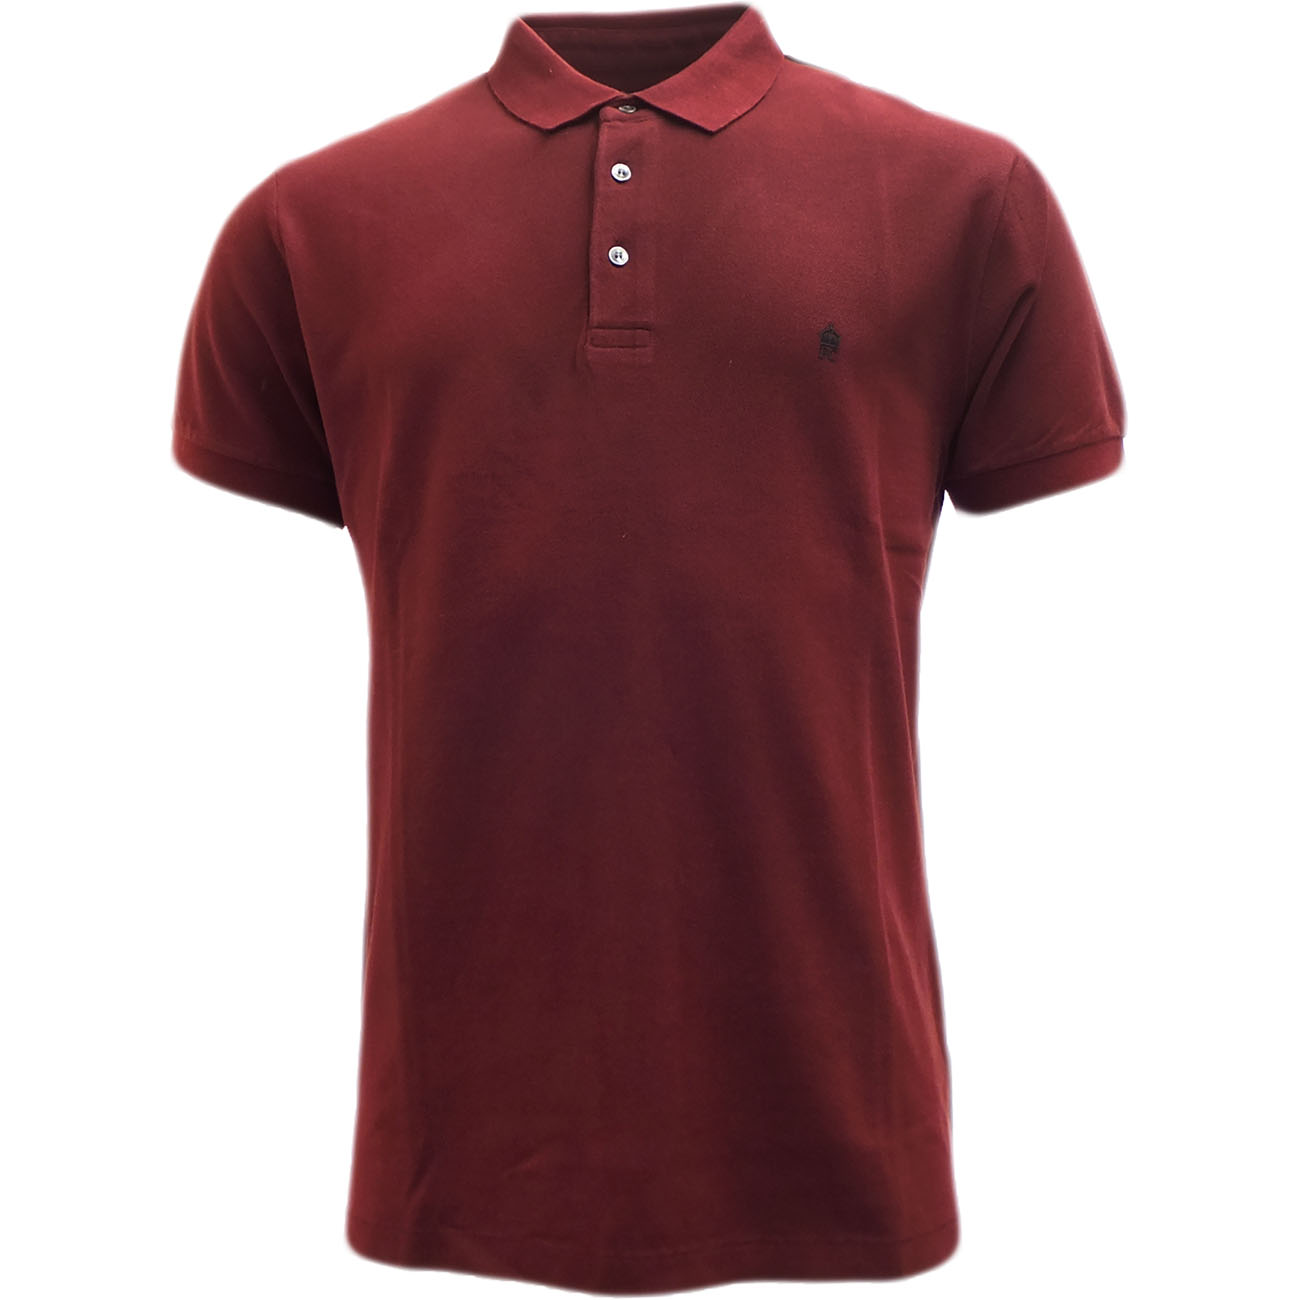 Fcuk Plain Pique Polo Shirt Burgundy